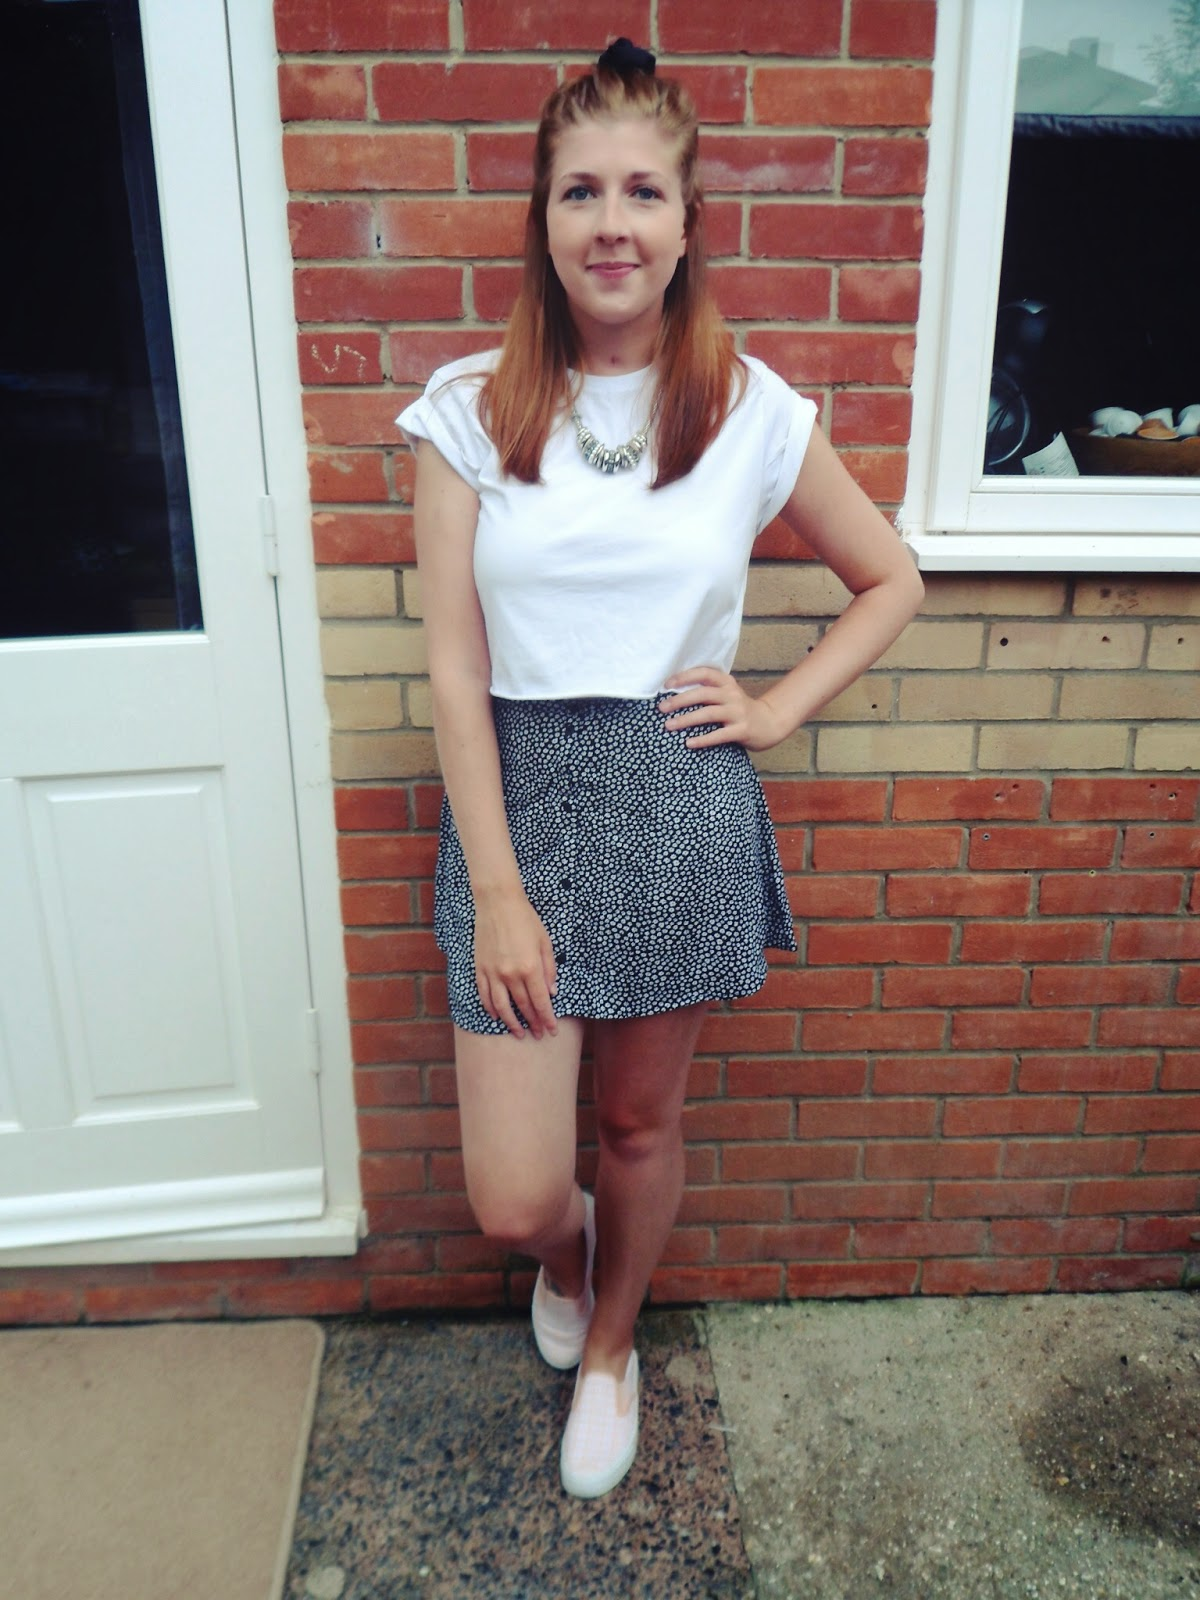 ASOS, croptop, fashion, fashionbloggers, fbloggers, HandM, ootd, outfitoftheday, plimsolls, primark, whatibought, whatimwearing, whatiwore, wiw